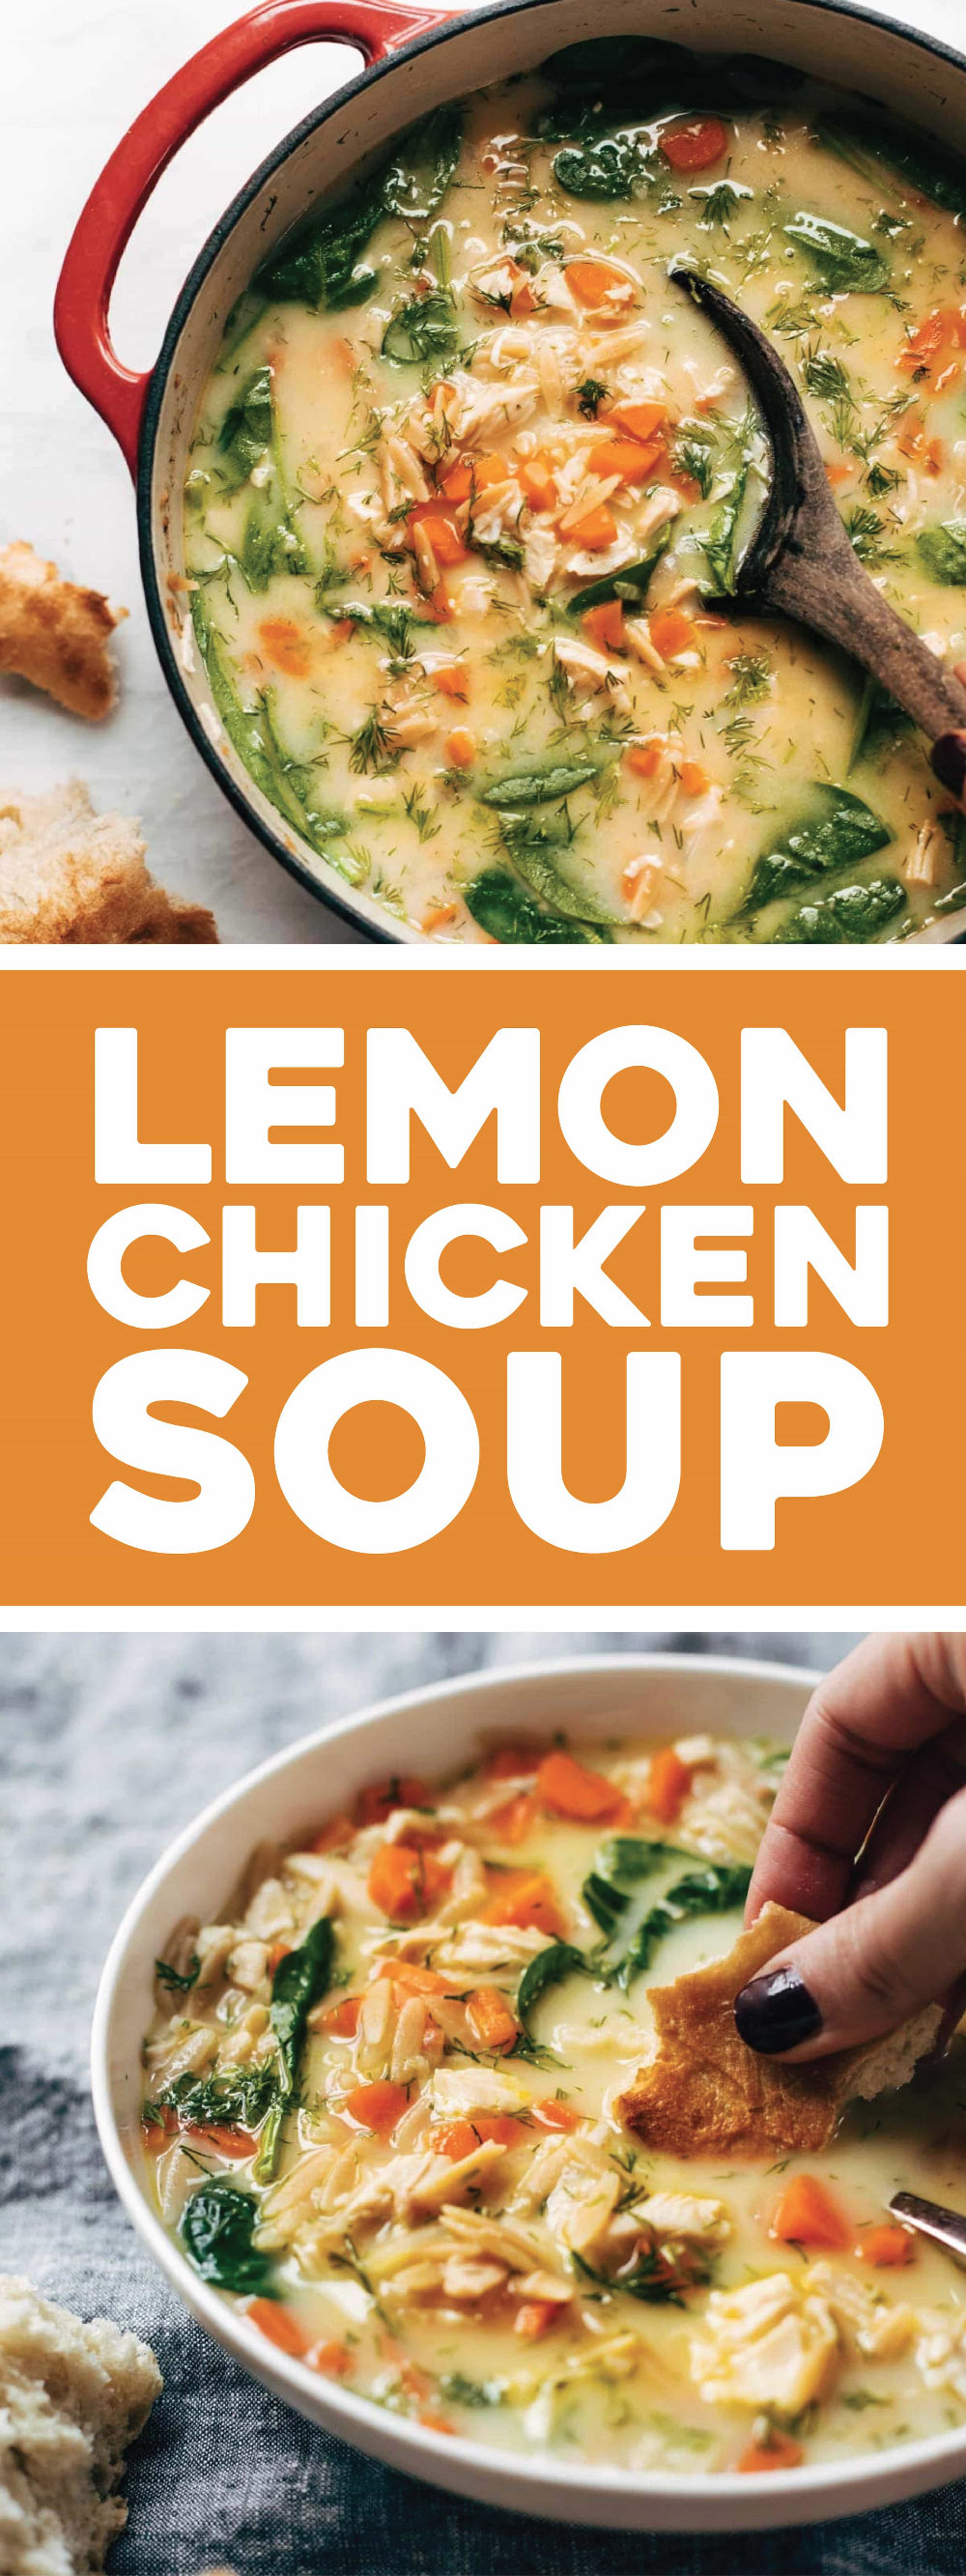 Filling, fresh, and vibrant lemony chicken soup made creamy with NO CREAM and a secret ingredient! #soup #chickennoodle #lemon #sugarfree #comfortfood #chicken | pinchofyum.com